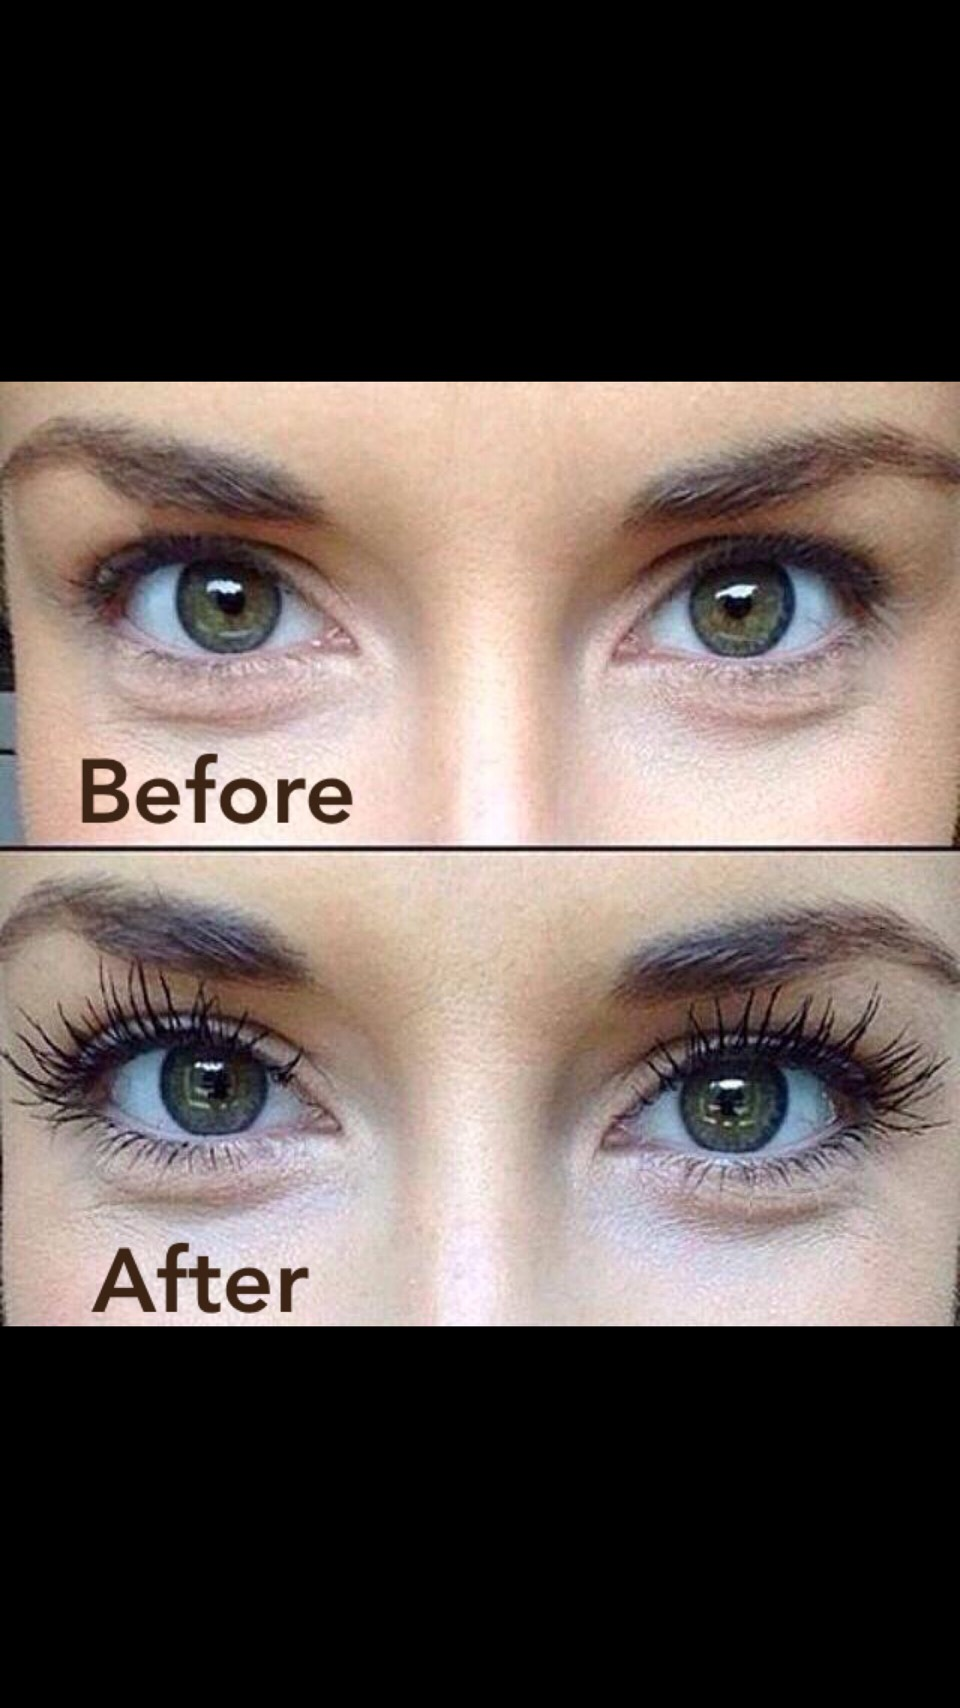 Results are OMG lashes!!  This mascara will be your one and only-and for $29...you can't go wrong!  Love it, or return it. No questions asked! (But you won't want to return-trust me!!)🎉 https://www.youniqueproducts.com/JessicaField/party/1431105/view